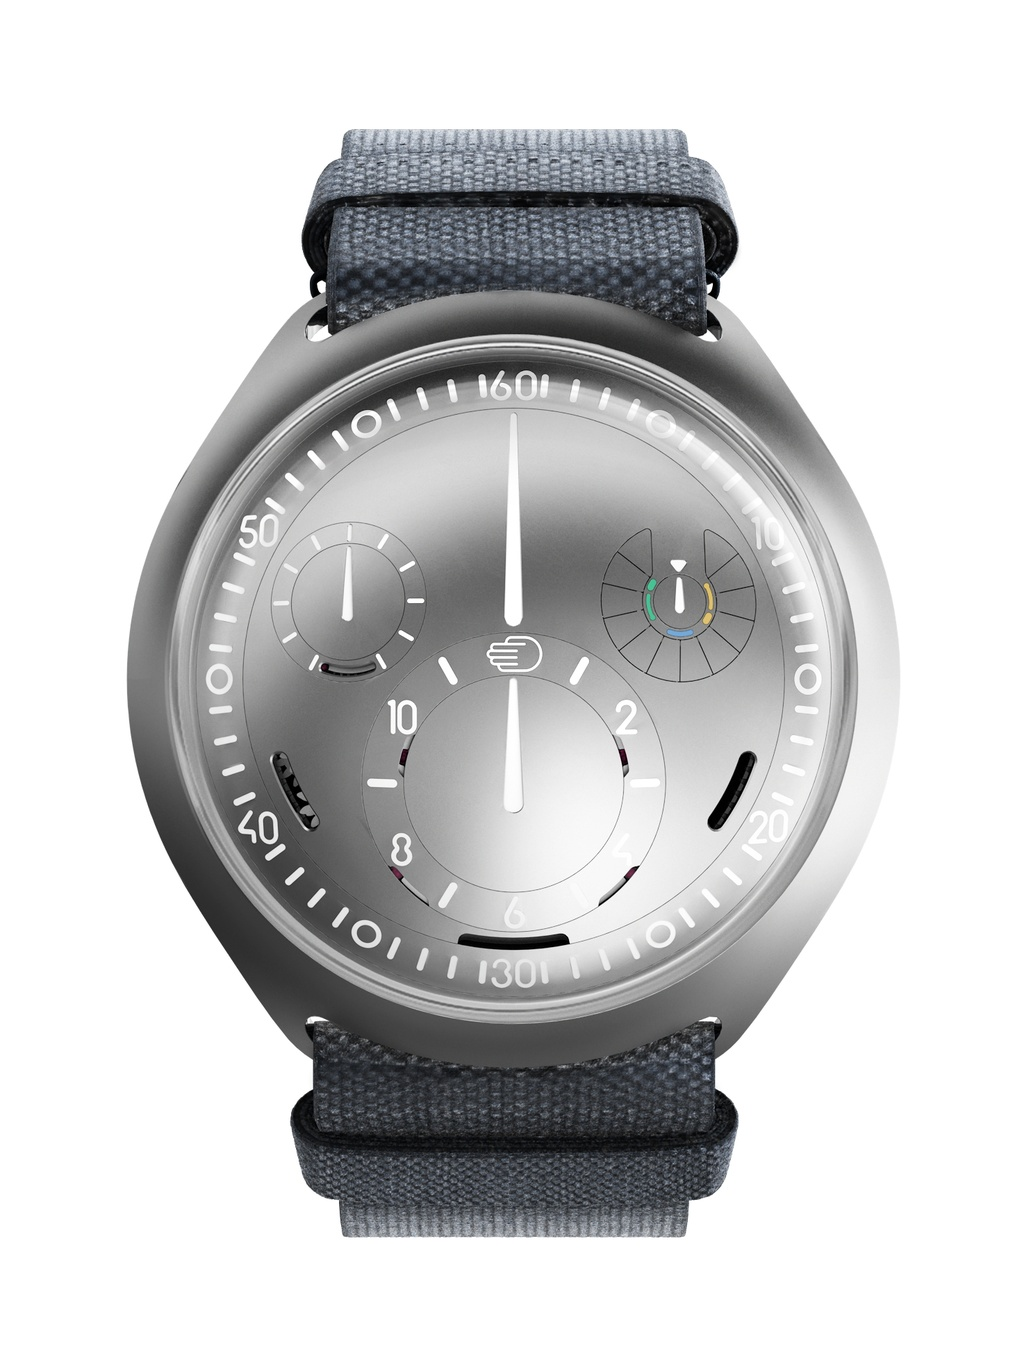 Ressence Type2 e-Crown Concept front view